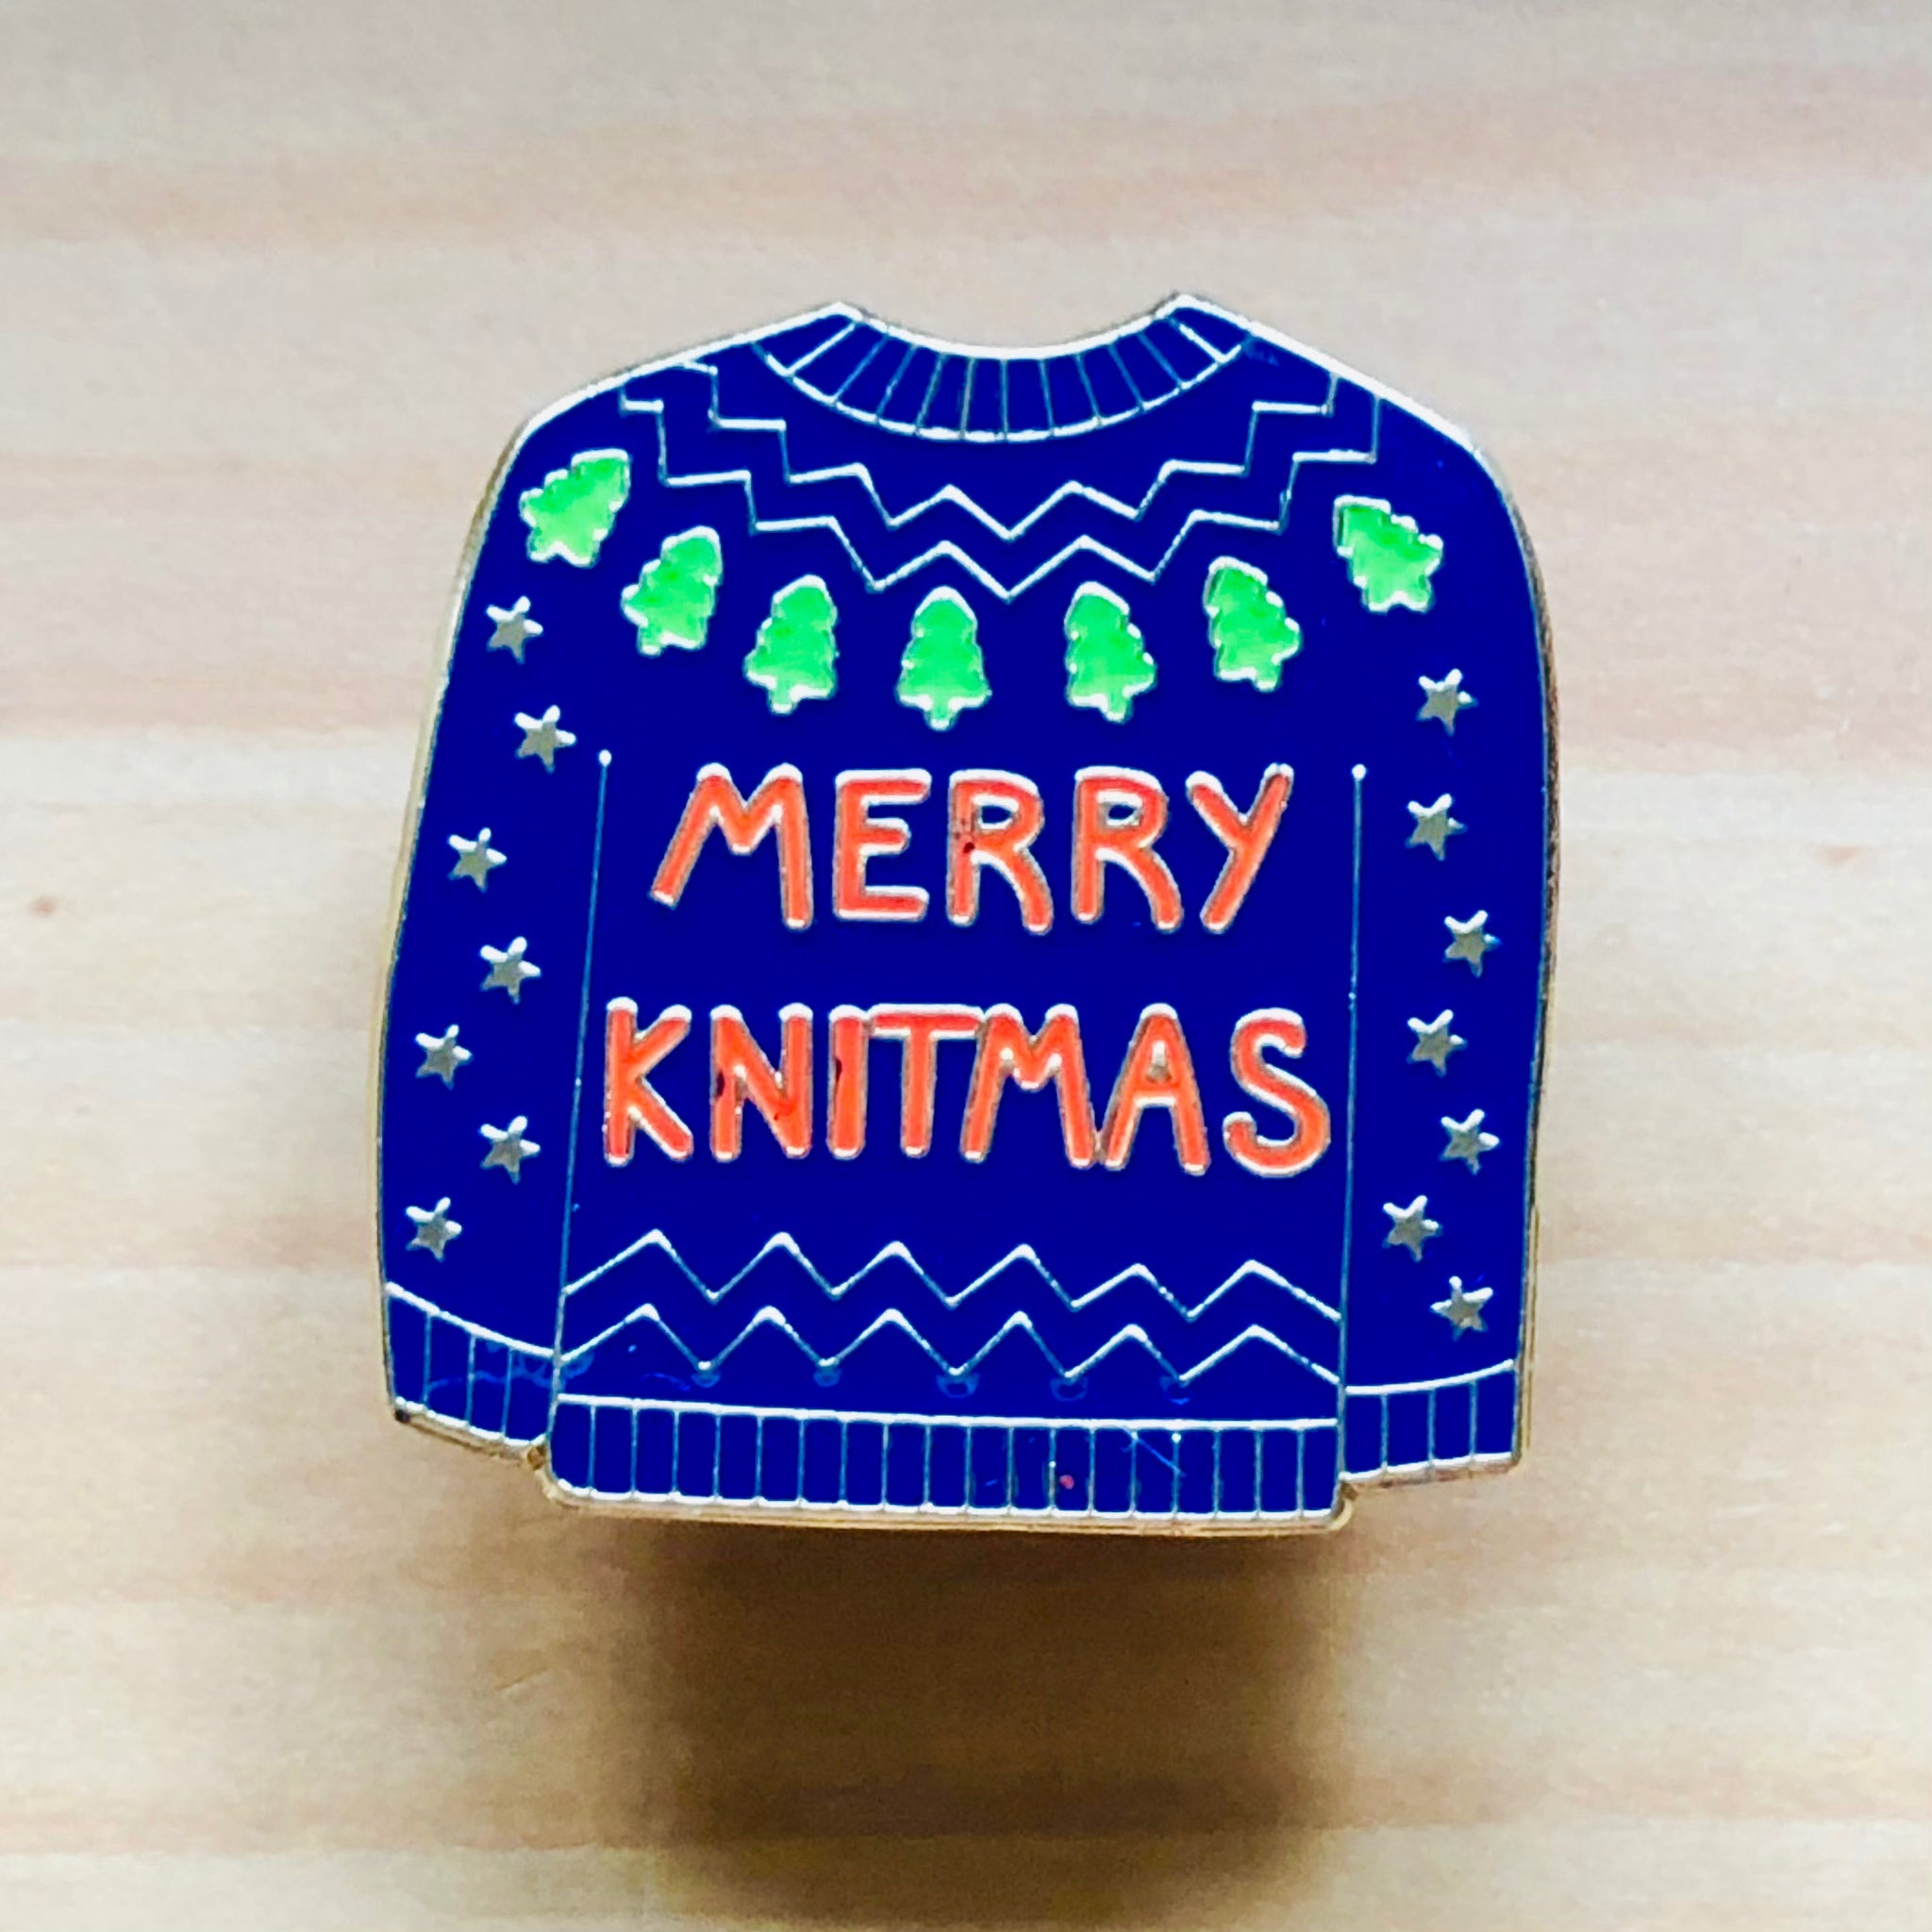 Merry Knitmas Pin Badge